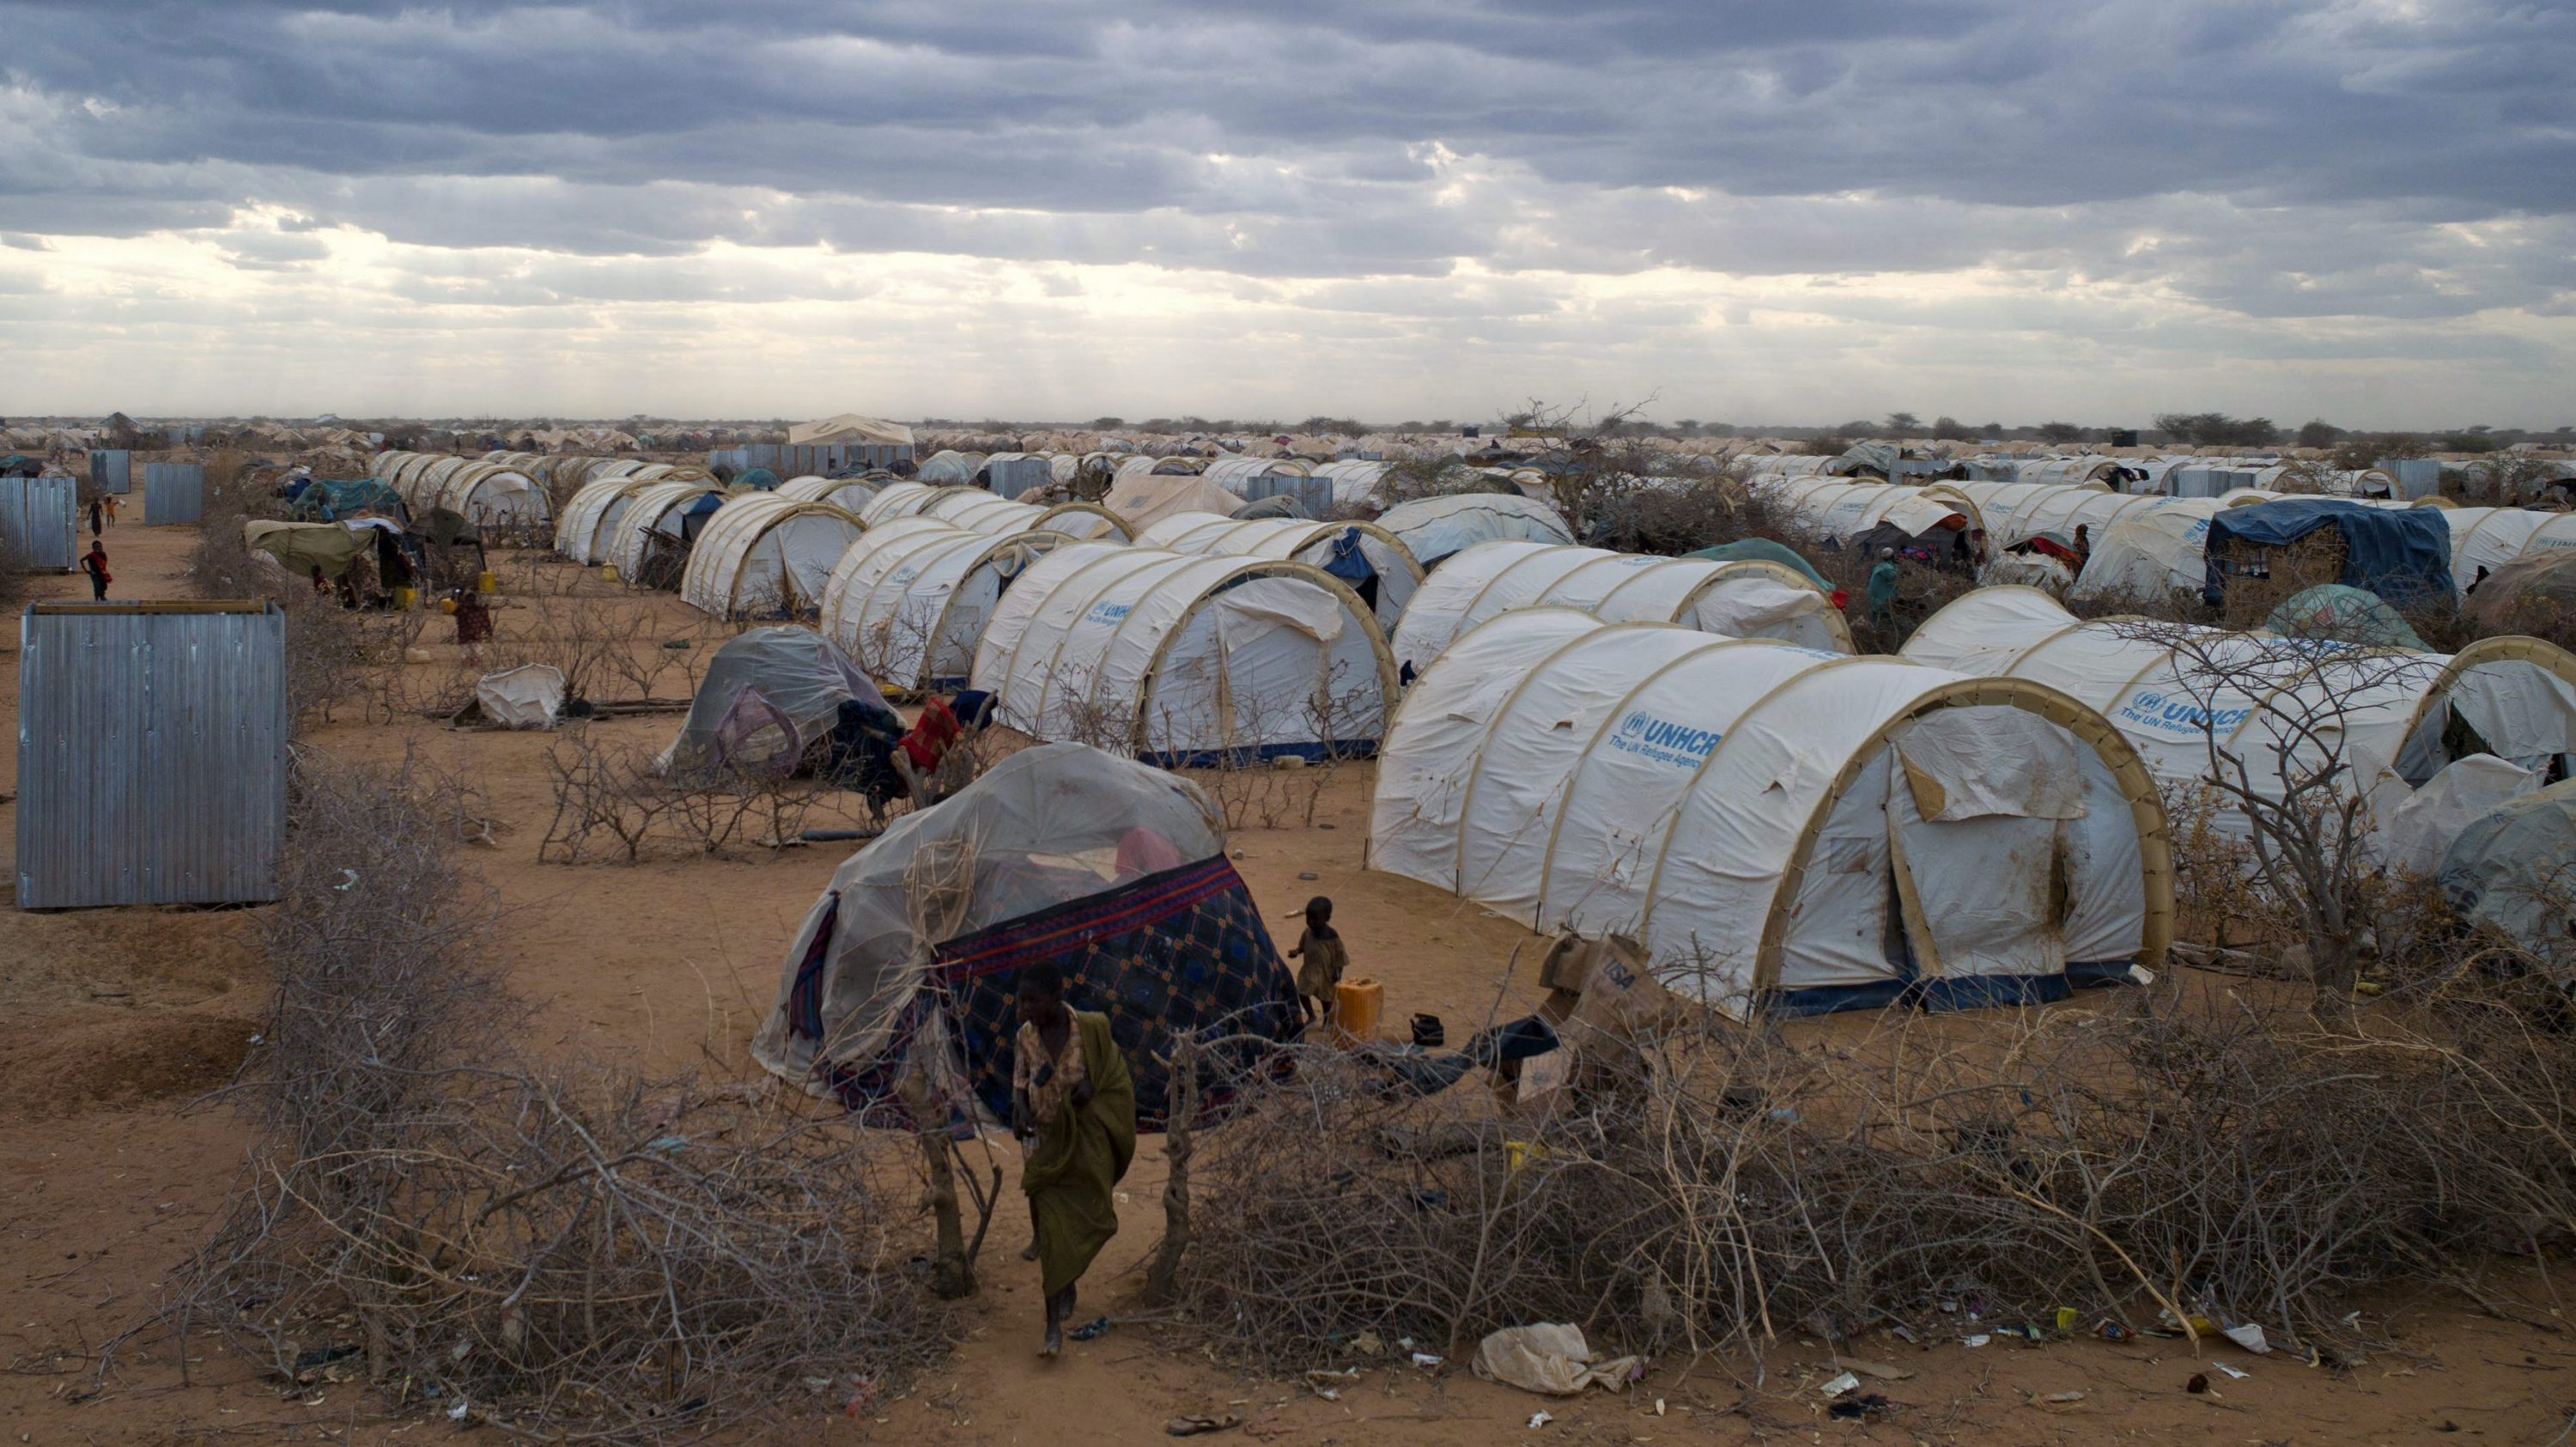 A tented settlement at the Dadaab refugee camp in Kenya.